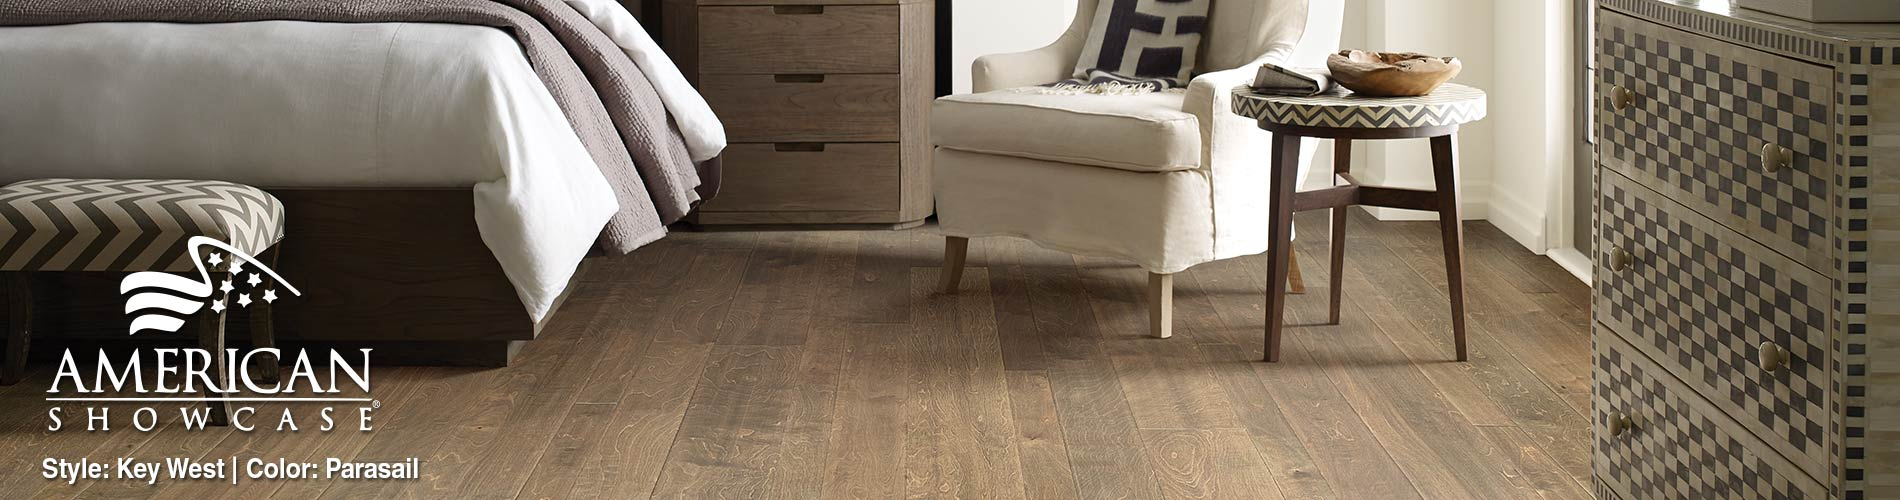 Abbey Flooring Amp Design Livonia Mi 48152 Flooring On